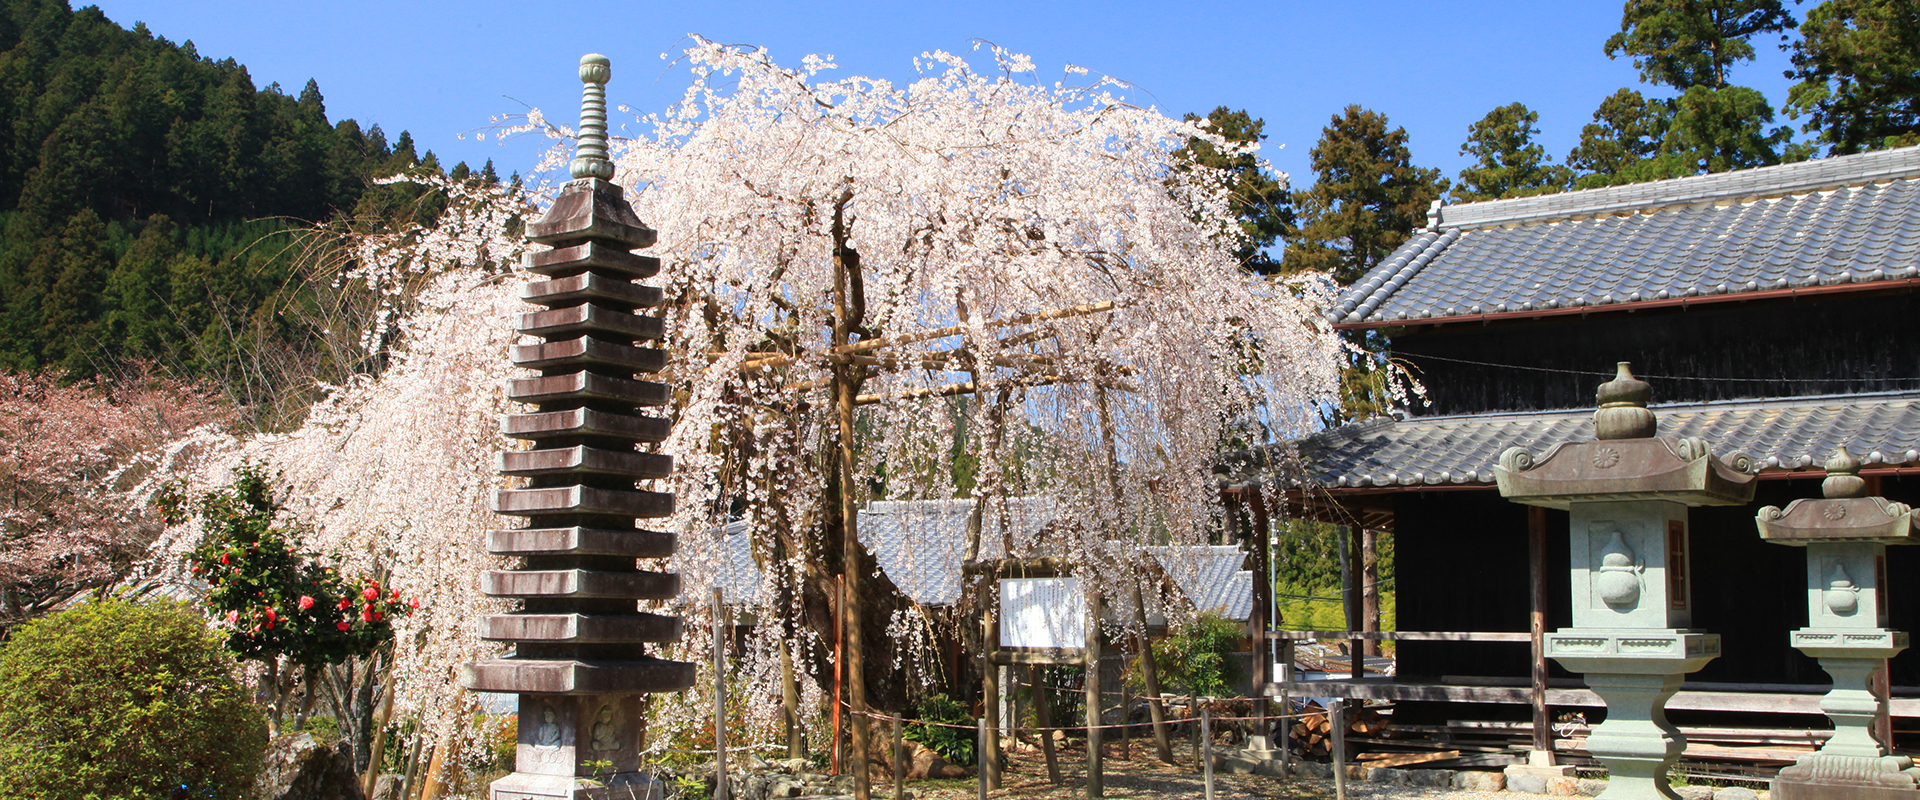 Weeping cherry blossoms and an intriguing hidden history